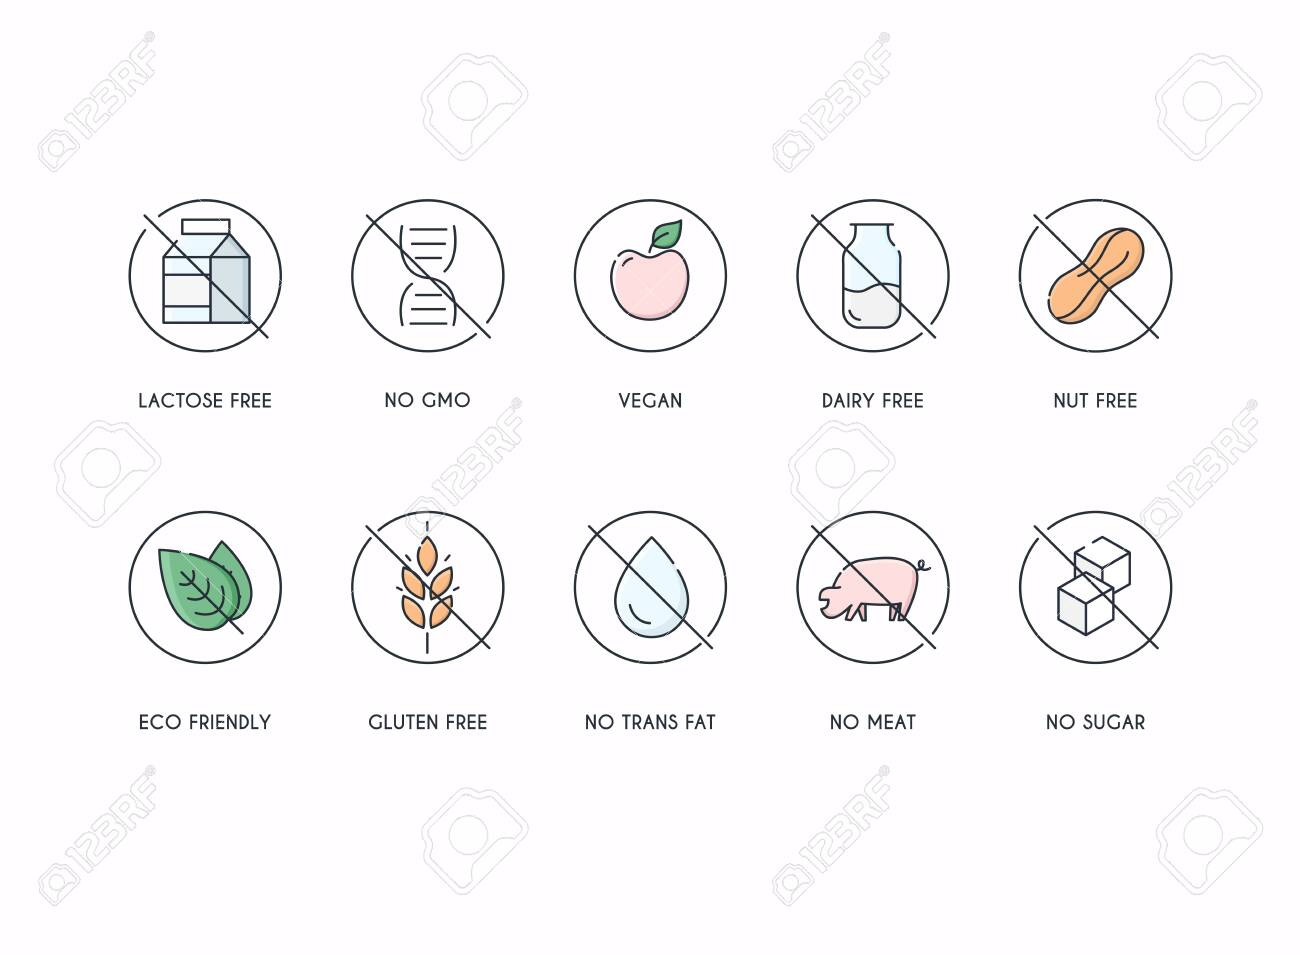 Badge Ingredient Warning Label Icons. Gluten, Lactose and Sugar Free Labels. - 141302173